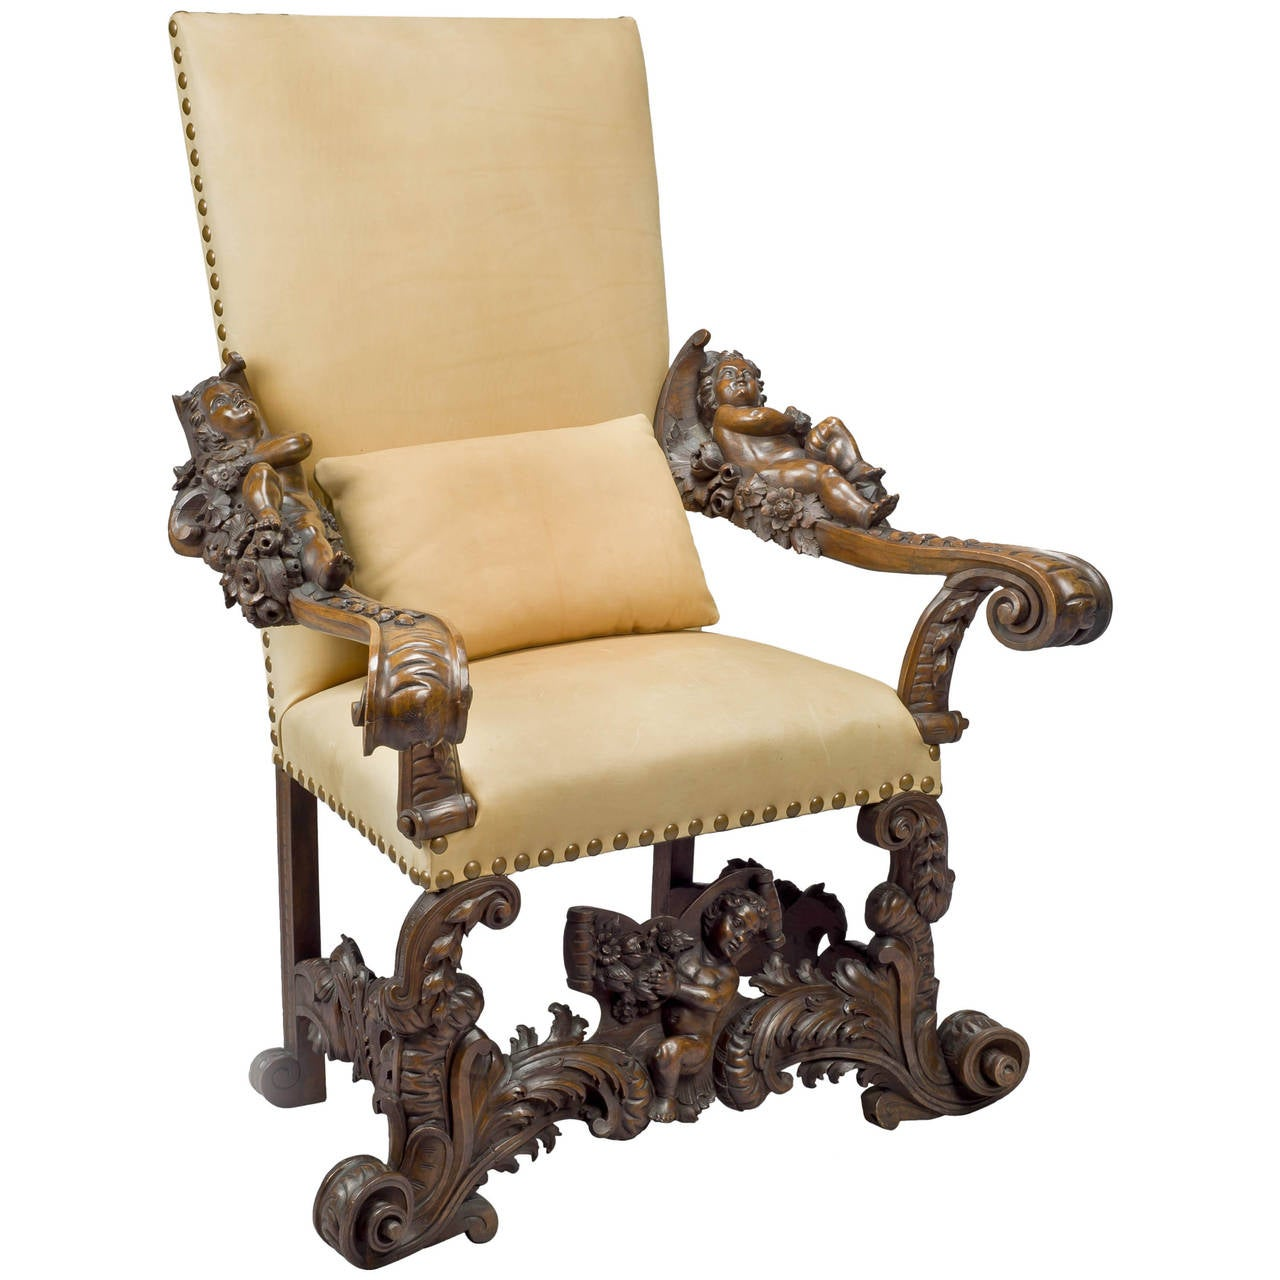 throne chair for sale the best brand venetian in manner of brustolon at 1stdibs